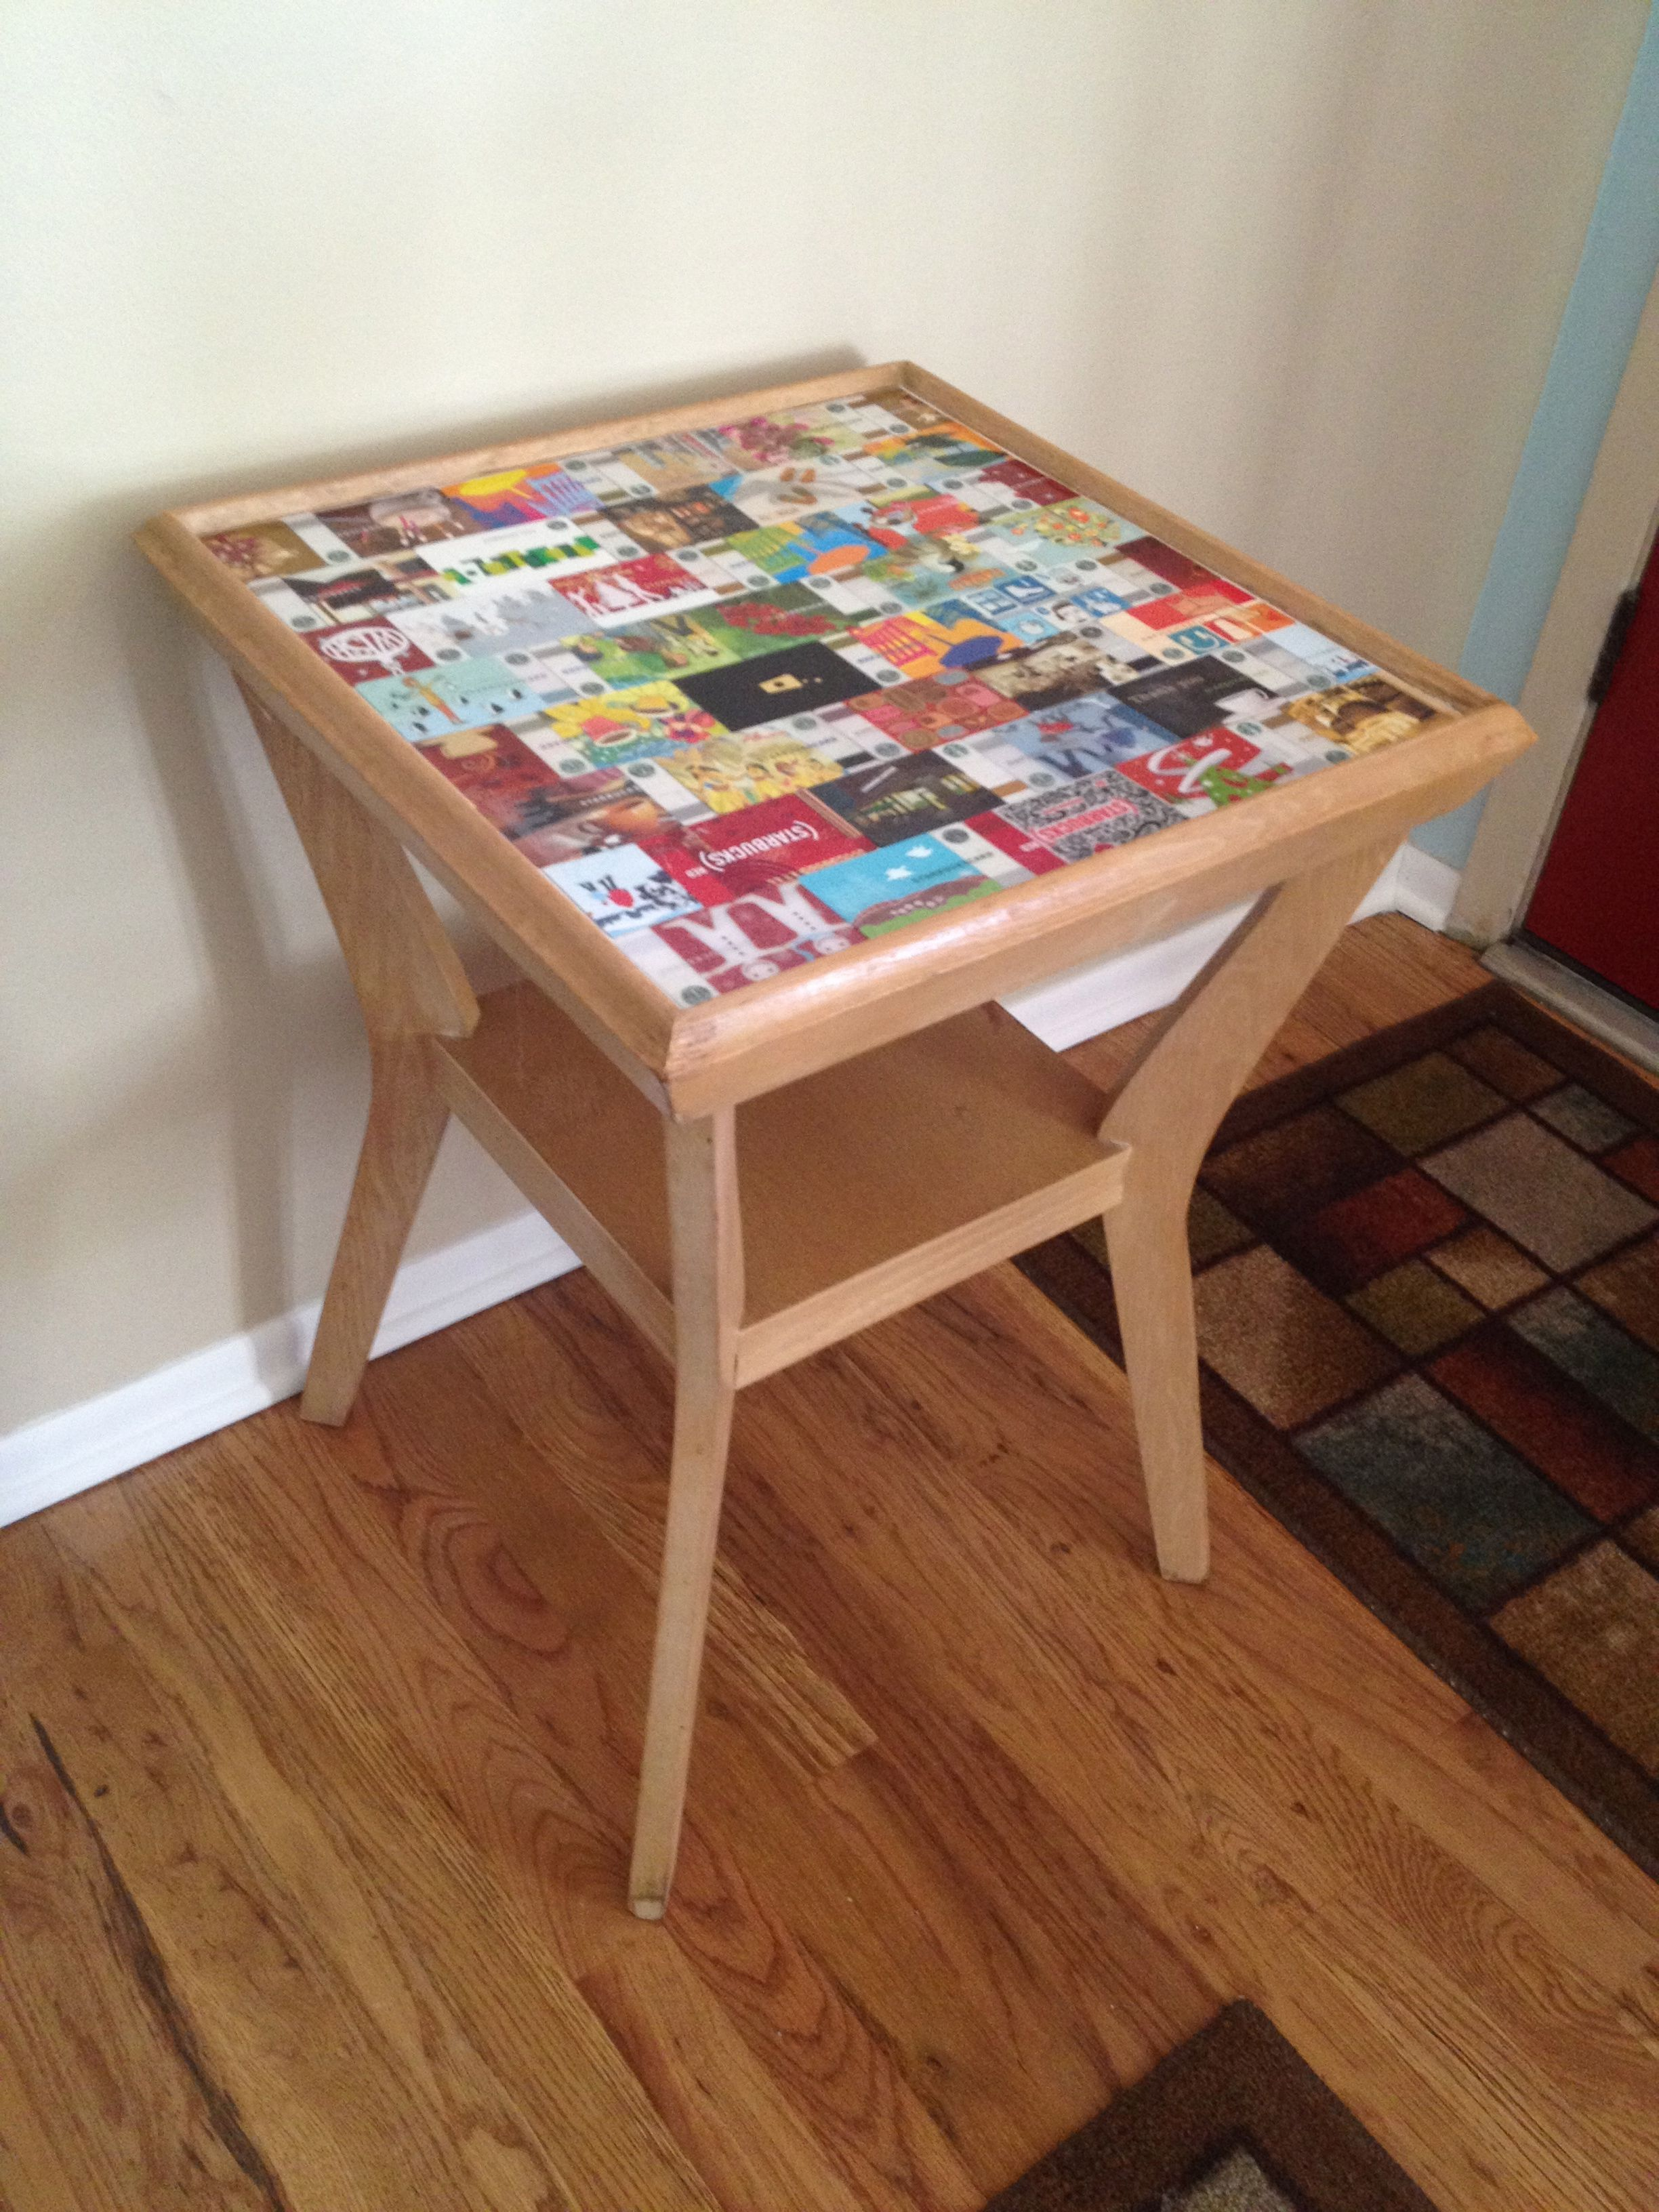 Mid century starbucks table top was lost to water damage